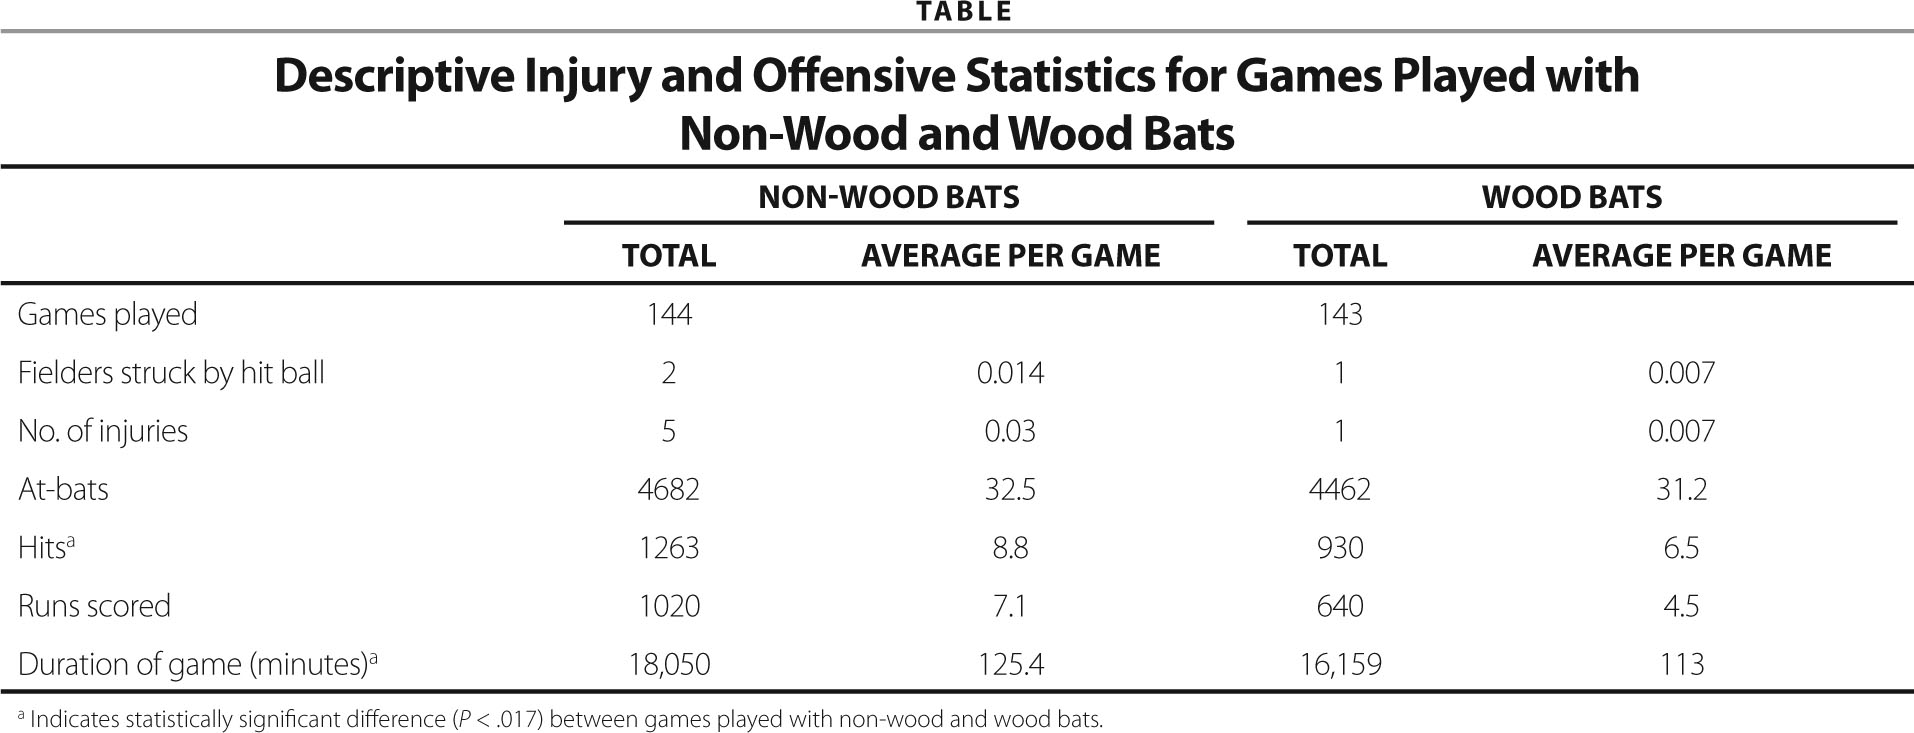 Descriptive Injury and Offensive Statistics for Games Played with Non-Wood and Wood Bats